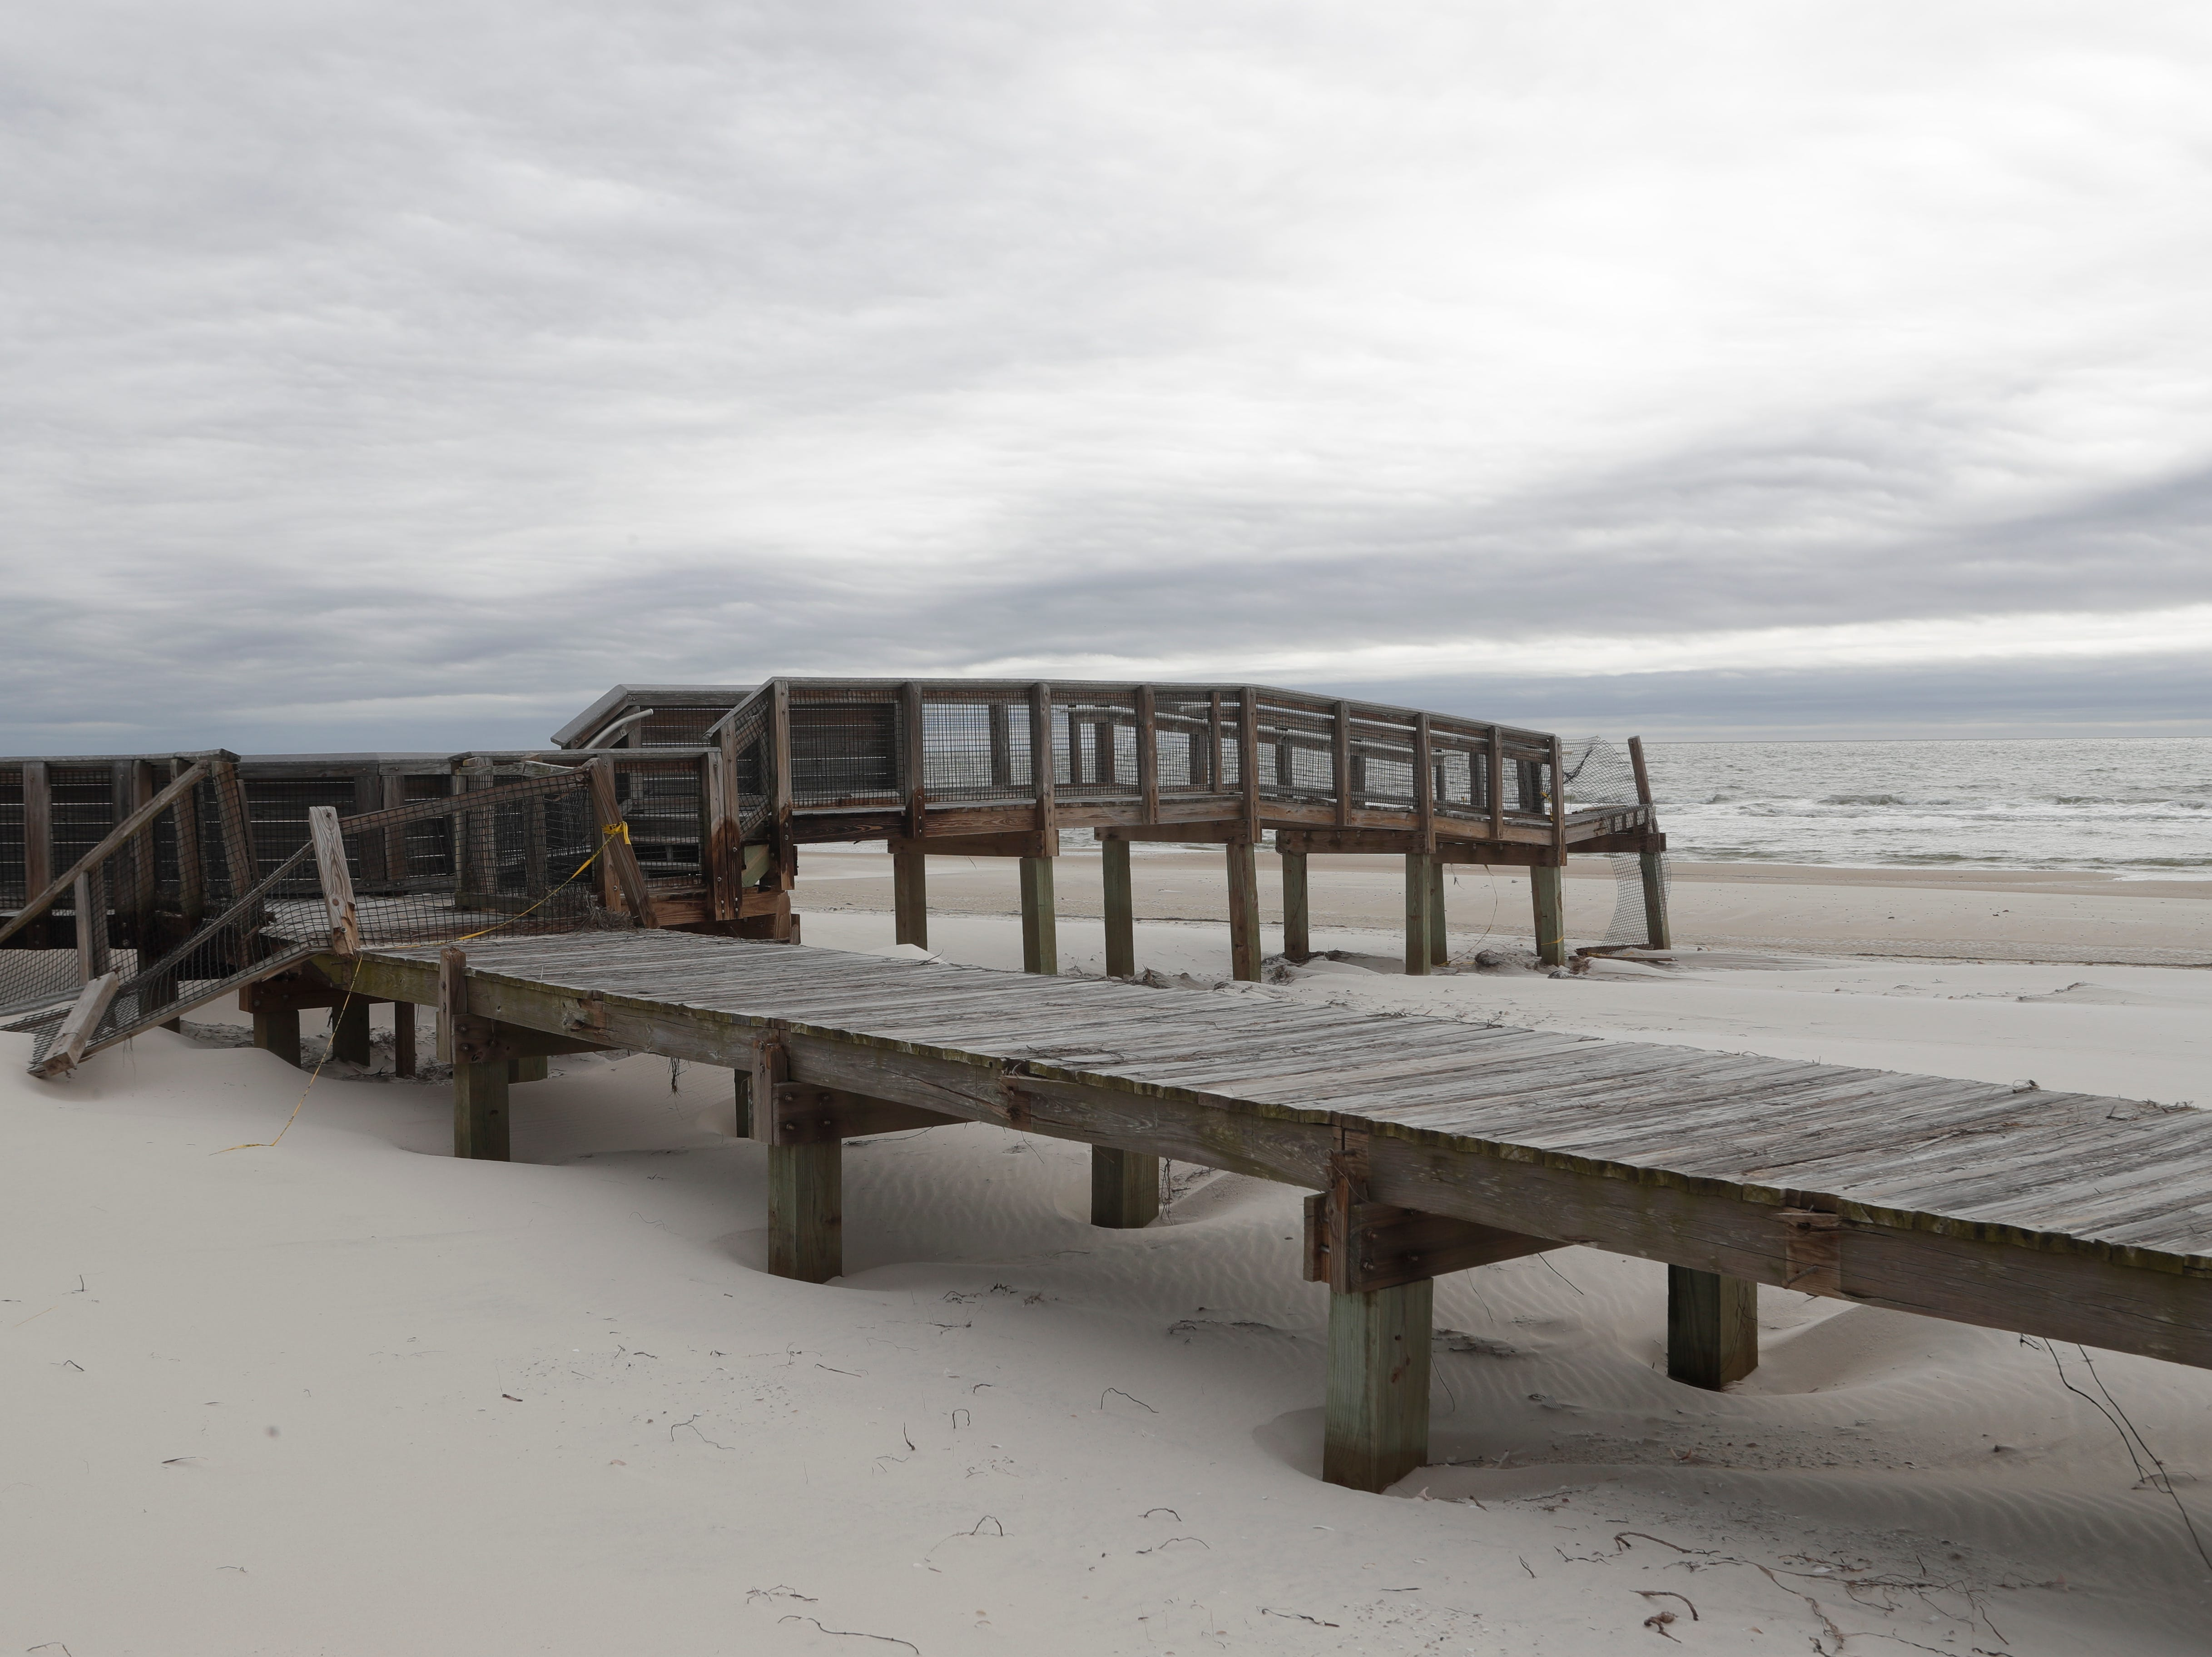 A boardwalk out to the beach from a pavilion in St. George Island State Park, Tuesday Feb. 19, 2019. The railings from the boardwalk were torn apart during Hurricane Michael in Oct. 2018.